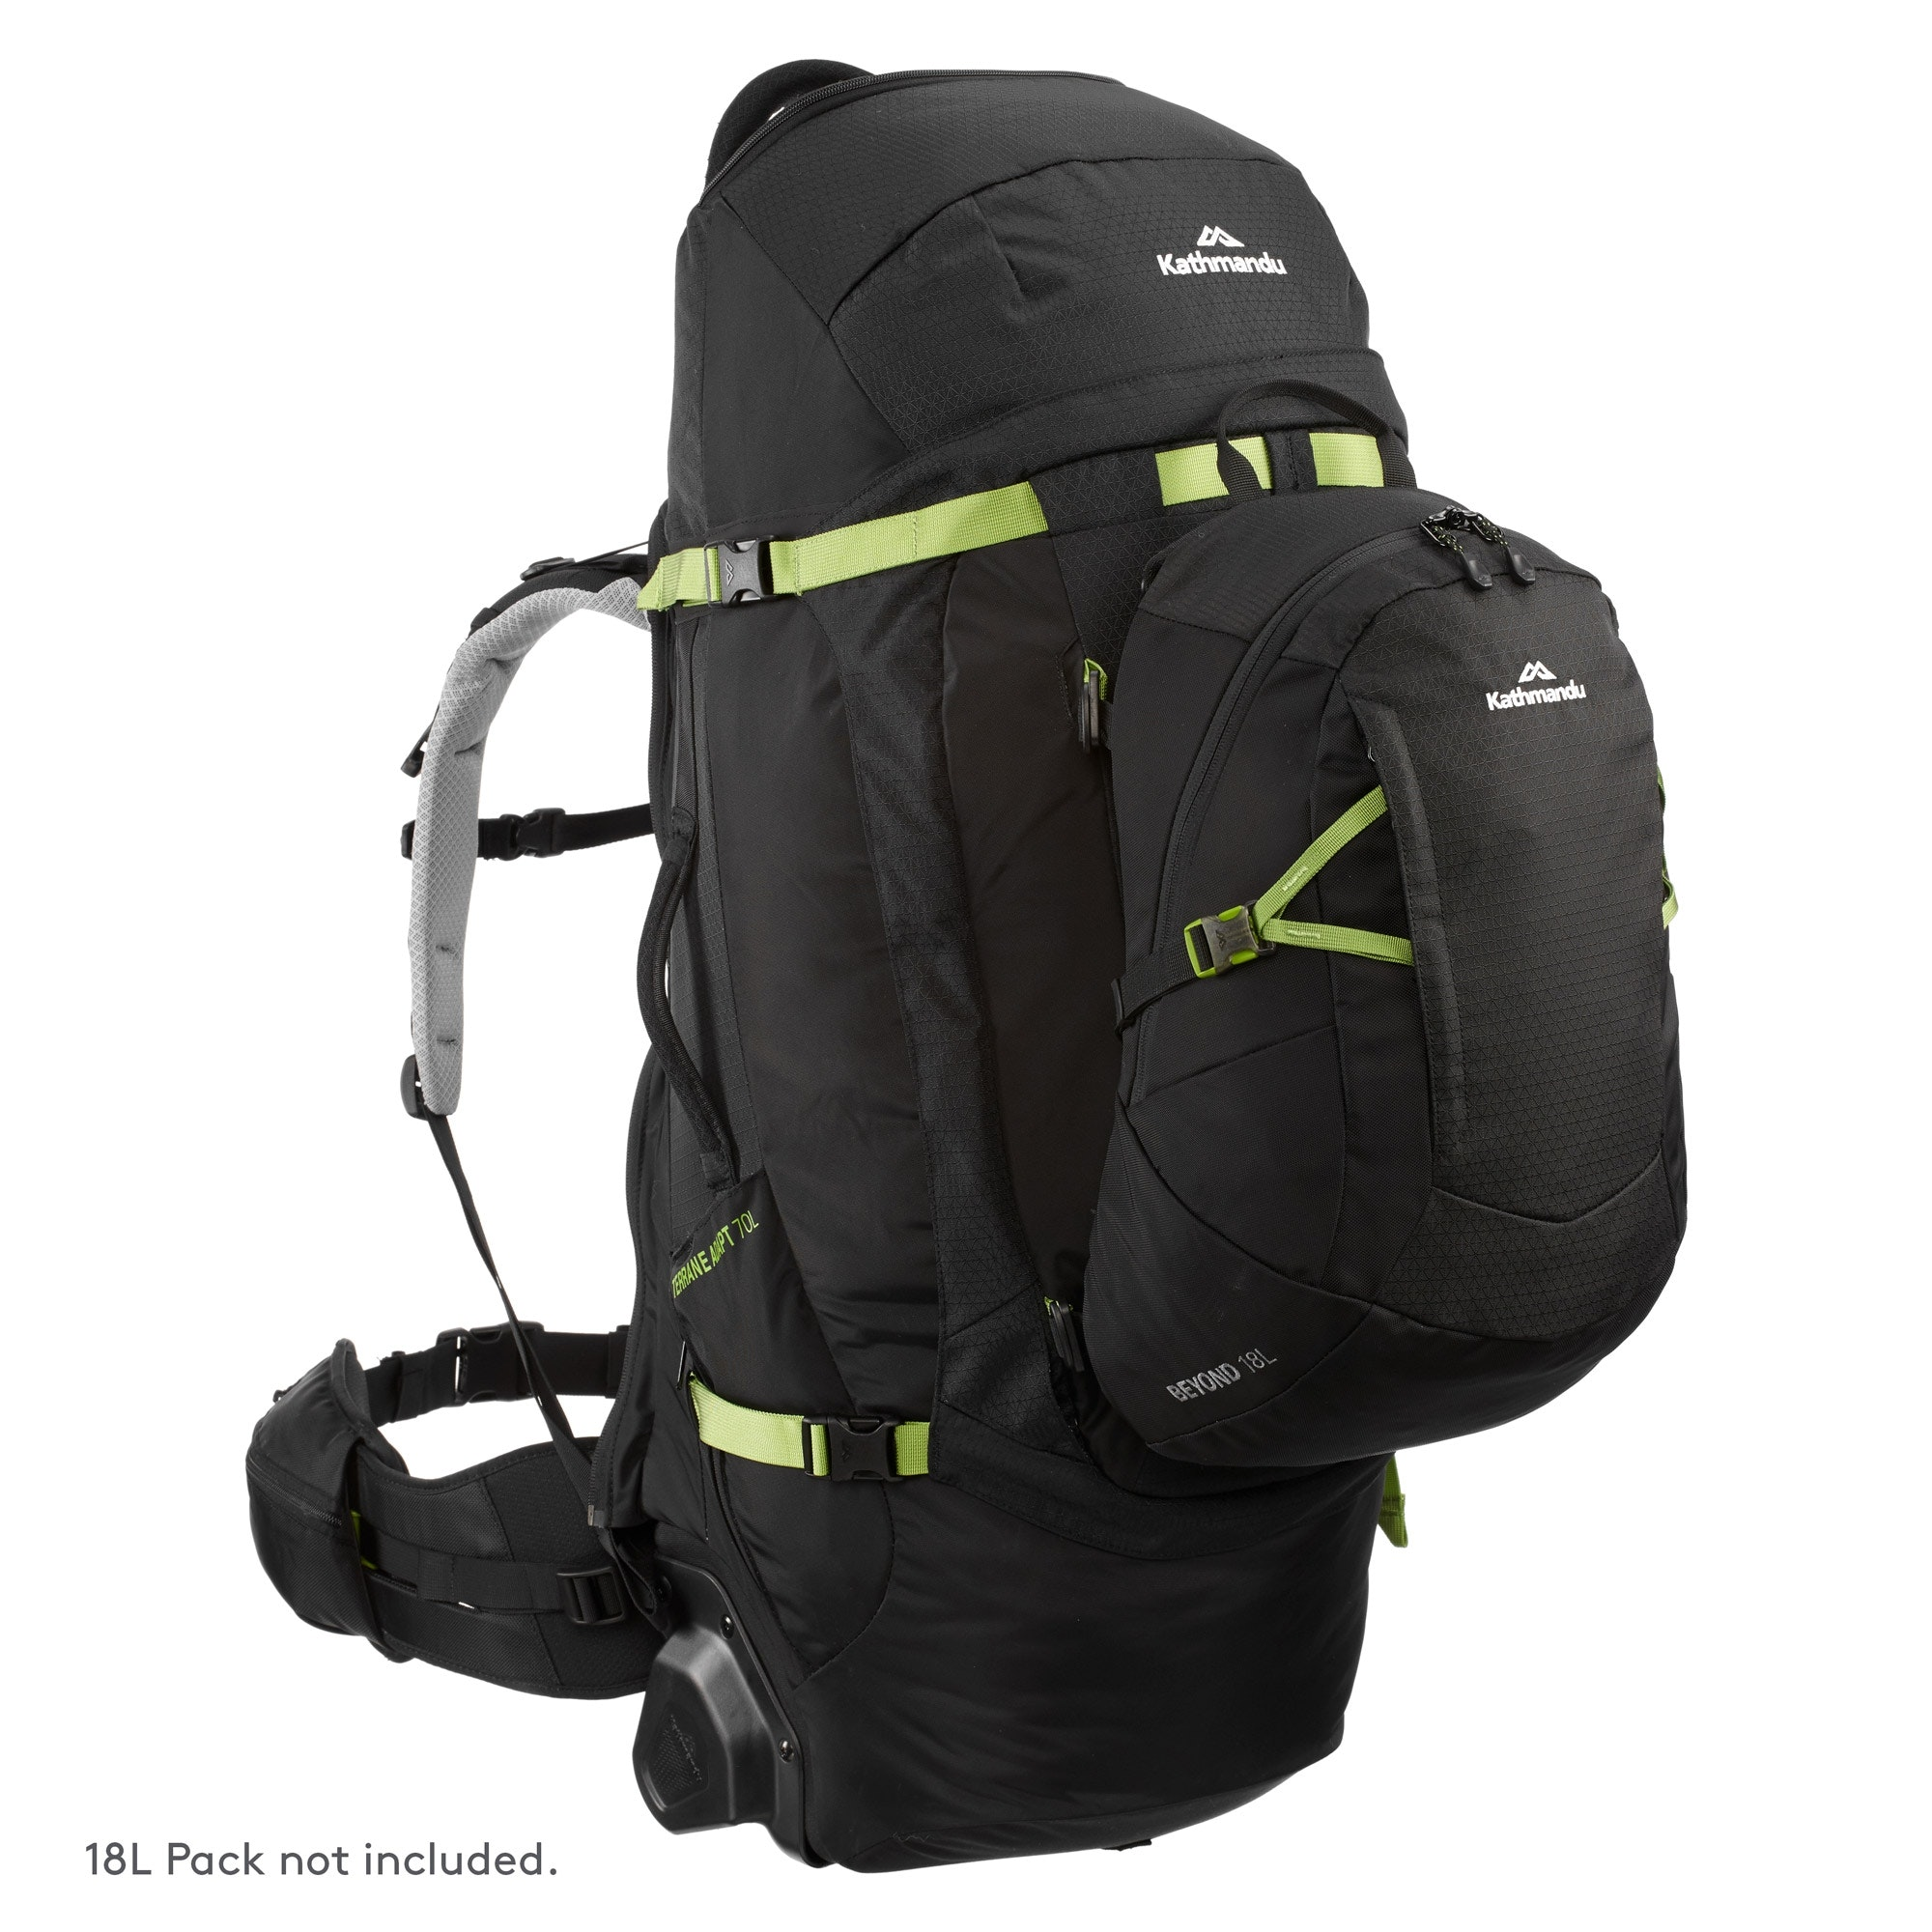 b92feaeb8c72 Carry On Backpack With Wheels Australia- Fenix Toulouse Handball